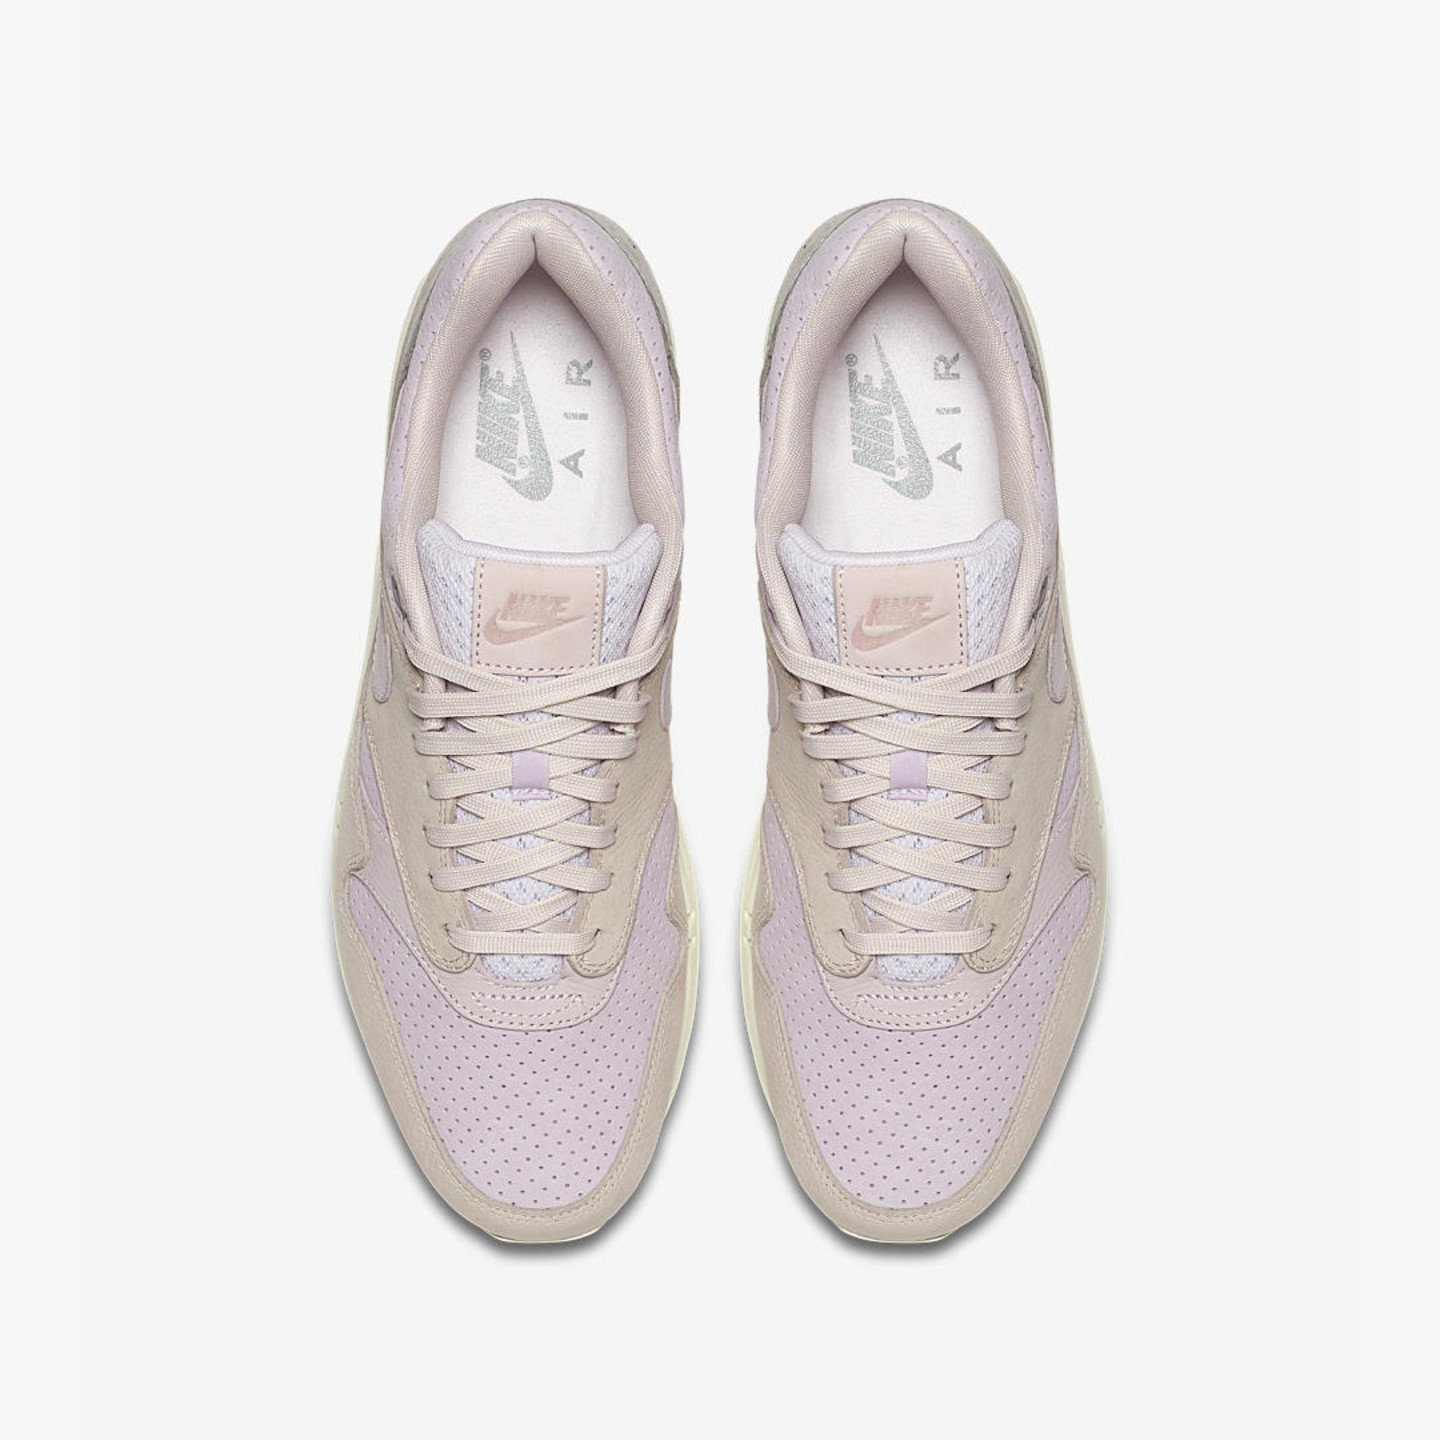 Nike Air Max 1 Pinnacle Arctic Pink 859554-600-41